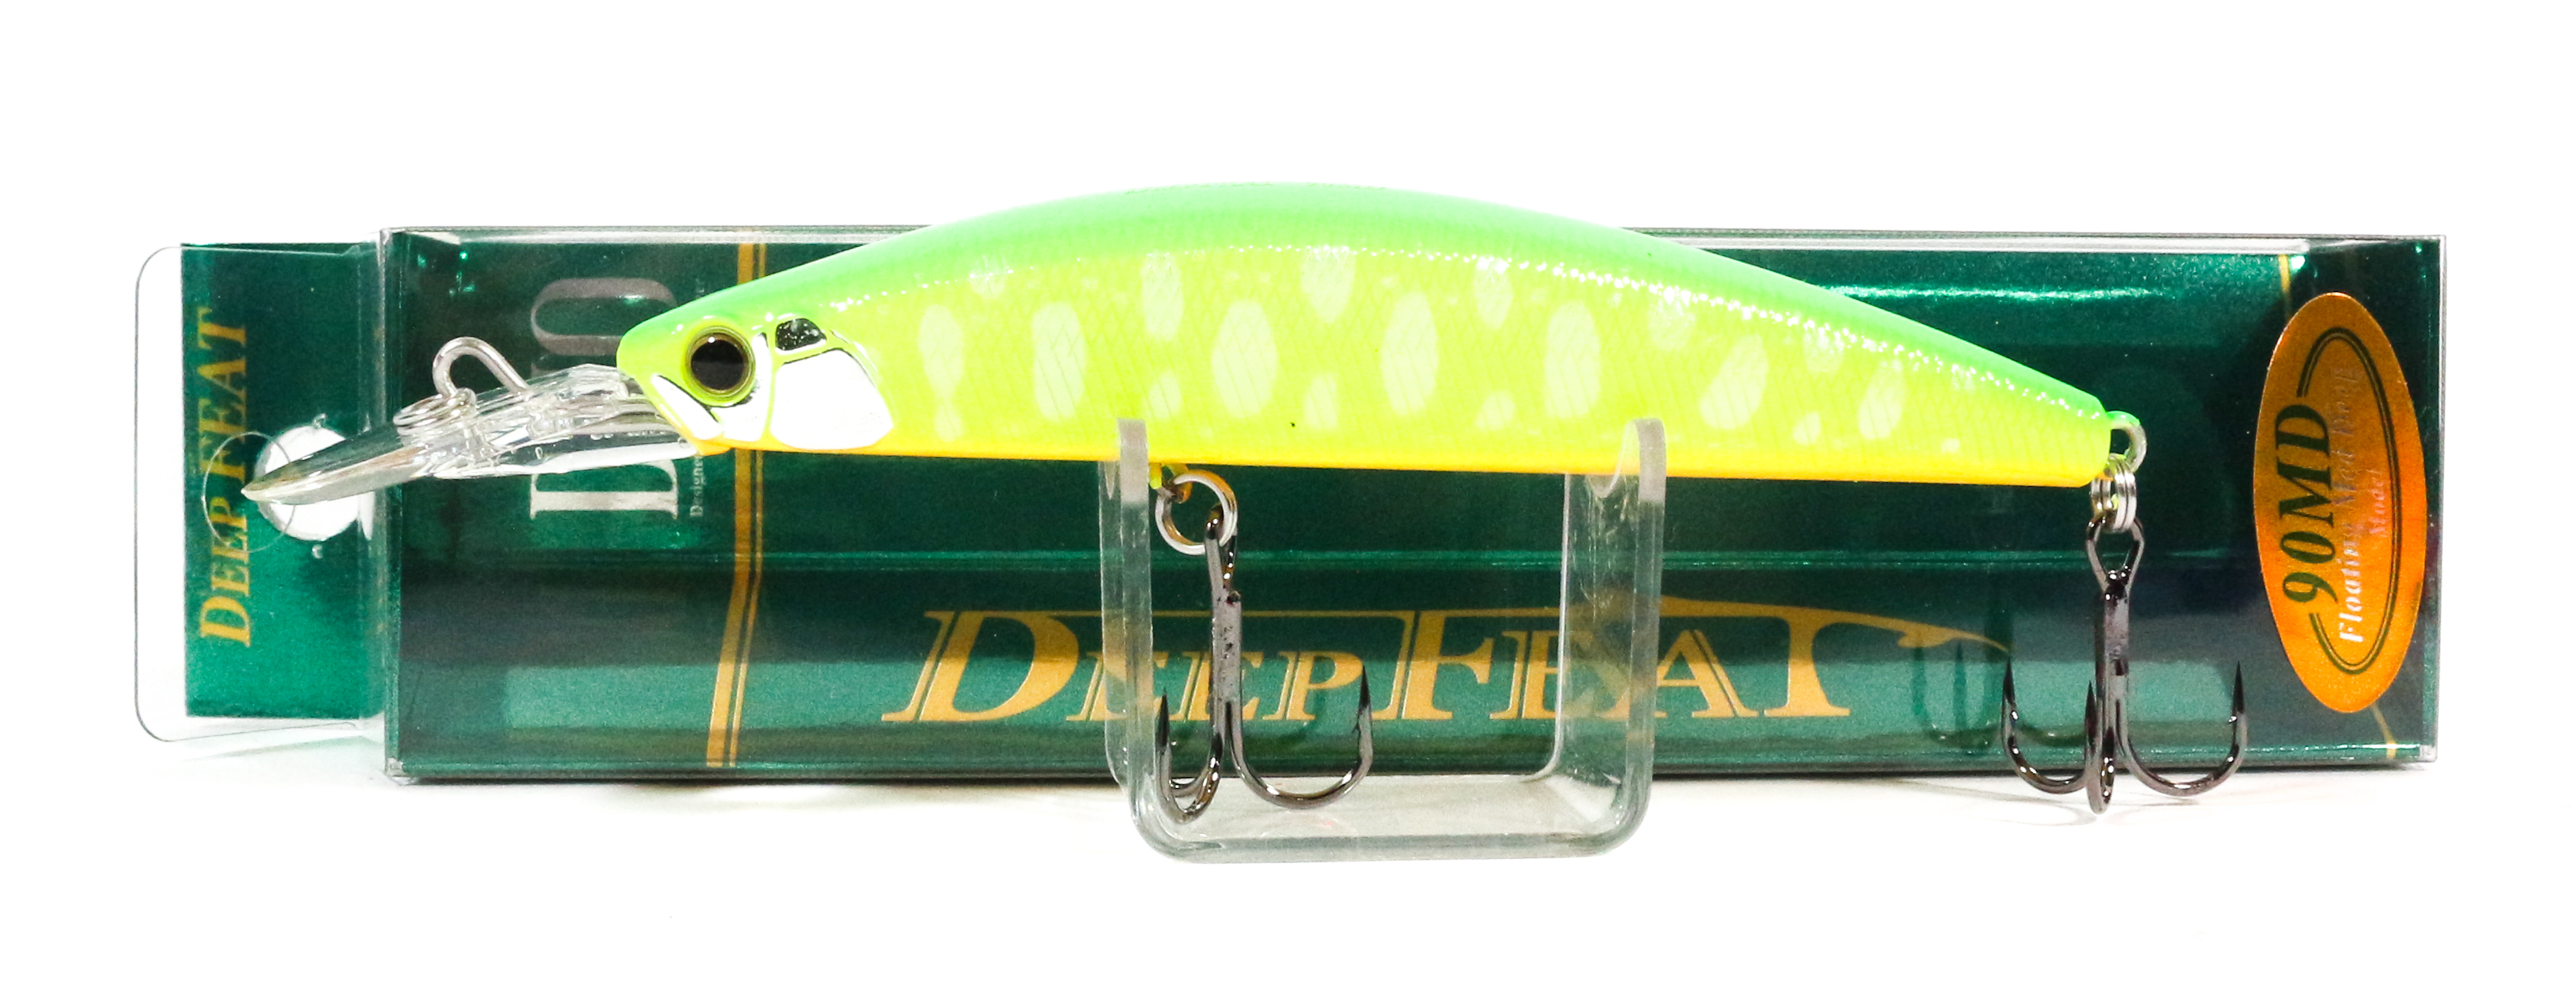 Duo Deep Feat 90 MDS Diving Sinking Lure ASI4044 (7907)